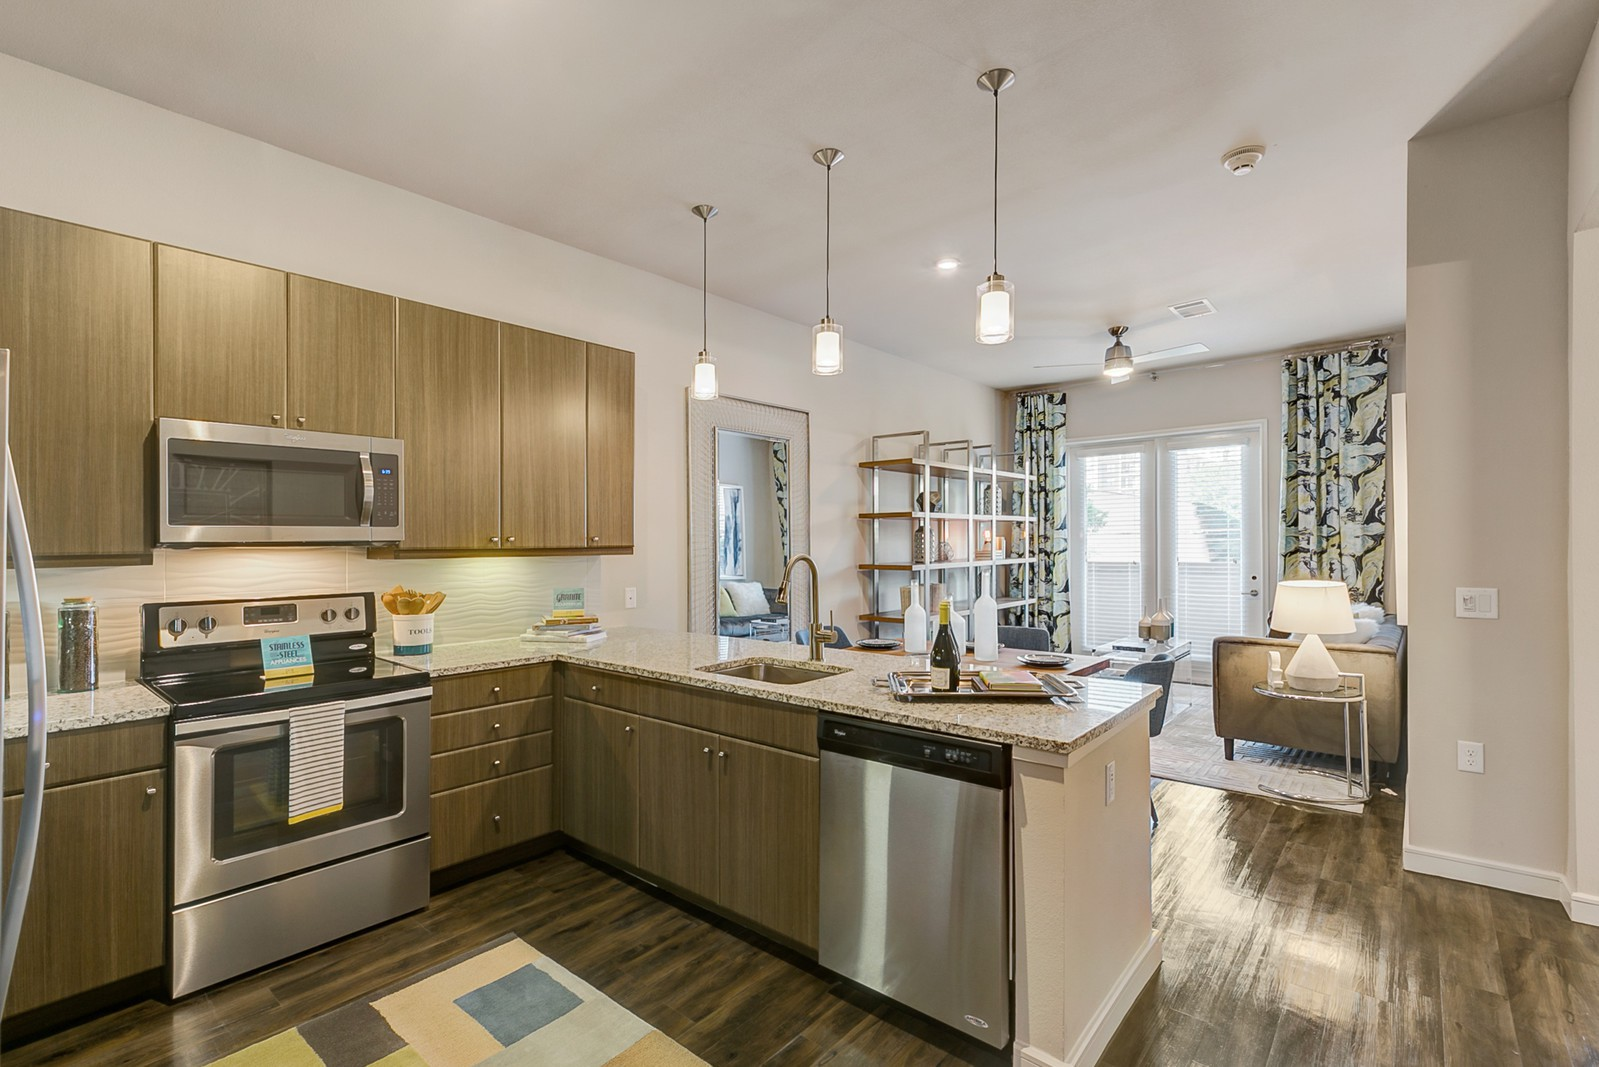 Apartments Near DTS One Oak Grove for Dallas Theological Seminary Students in Dallas, TX